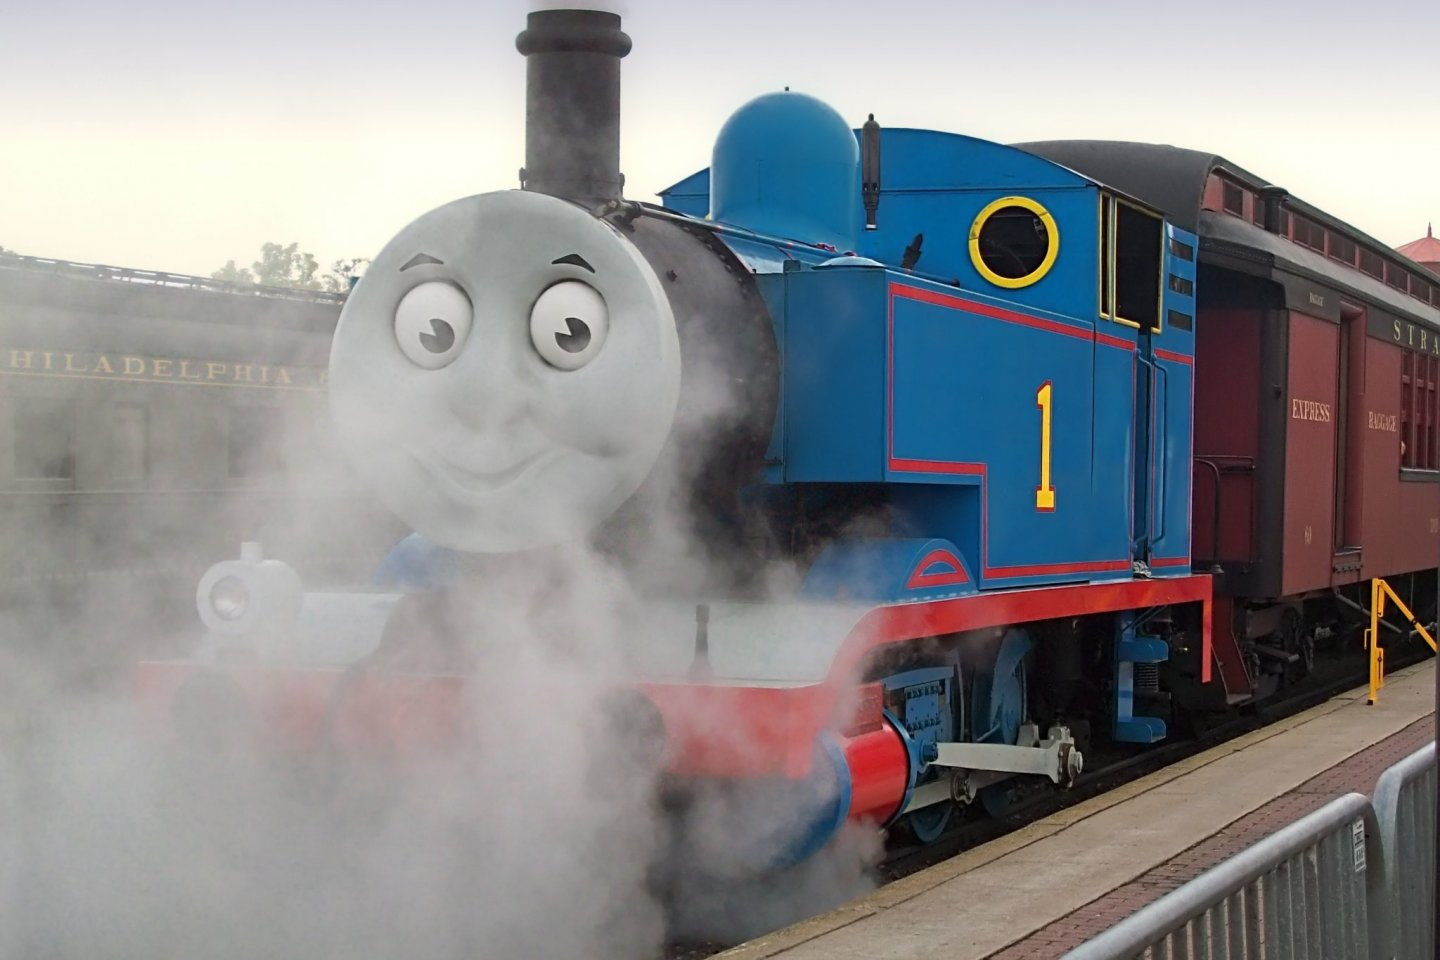 Thomas the Tank Engine has been a children\'s favorite for decades